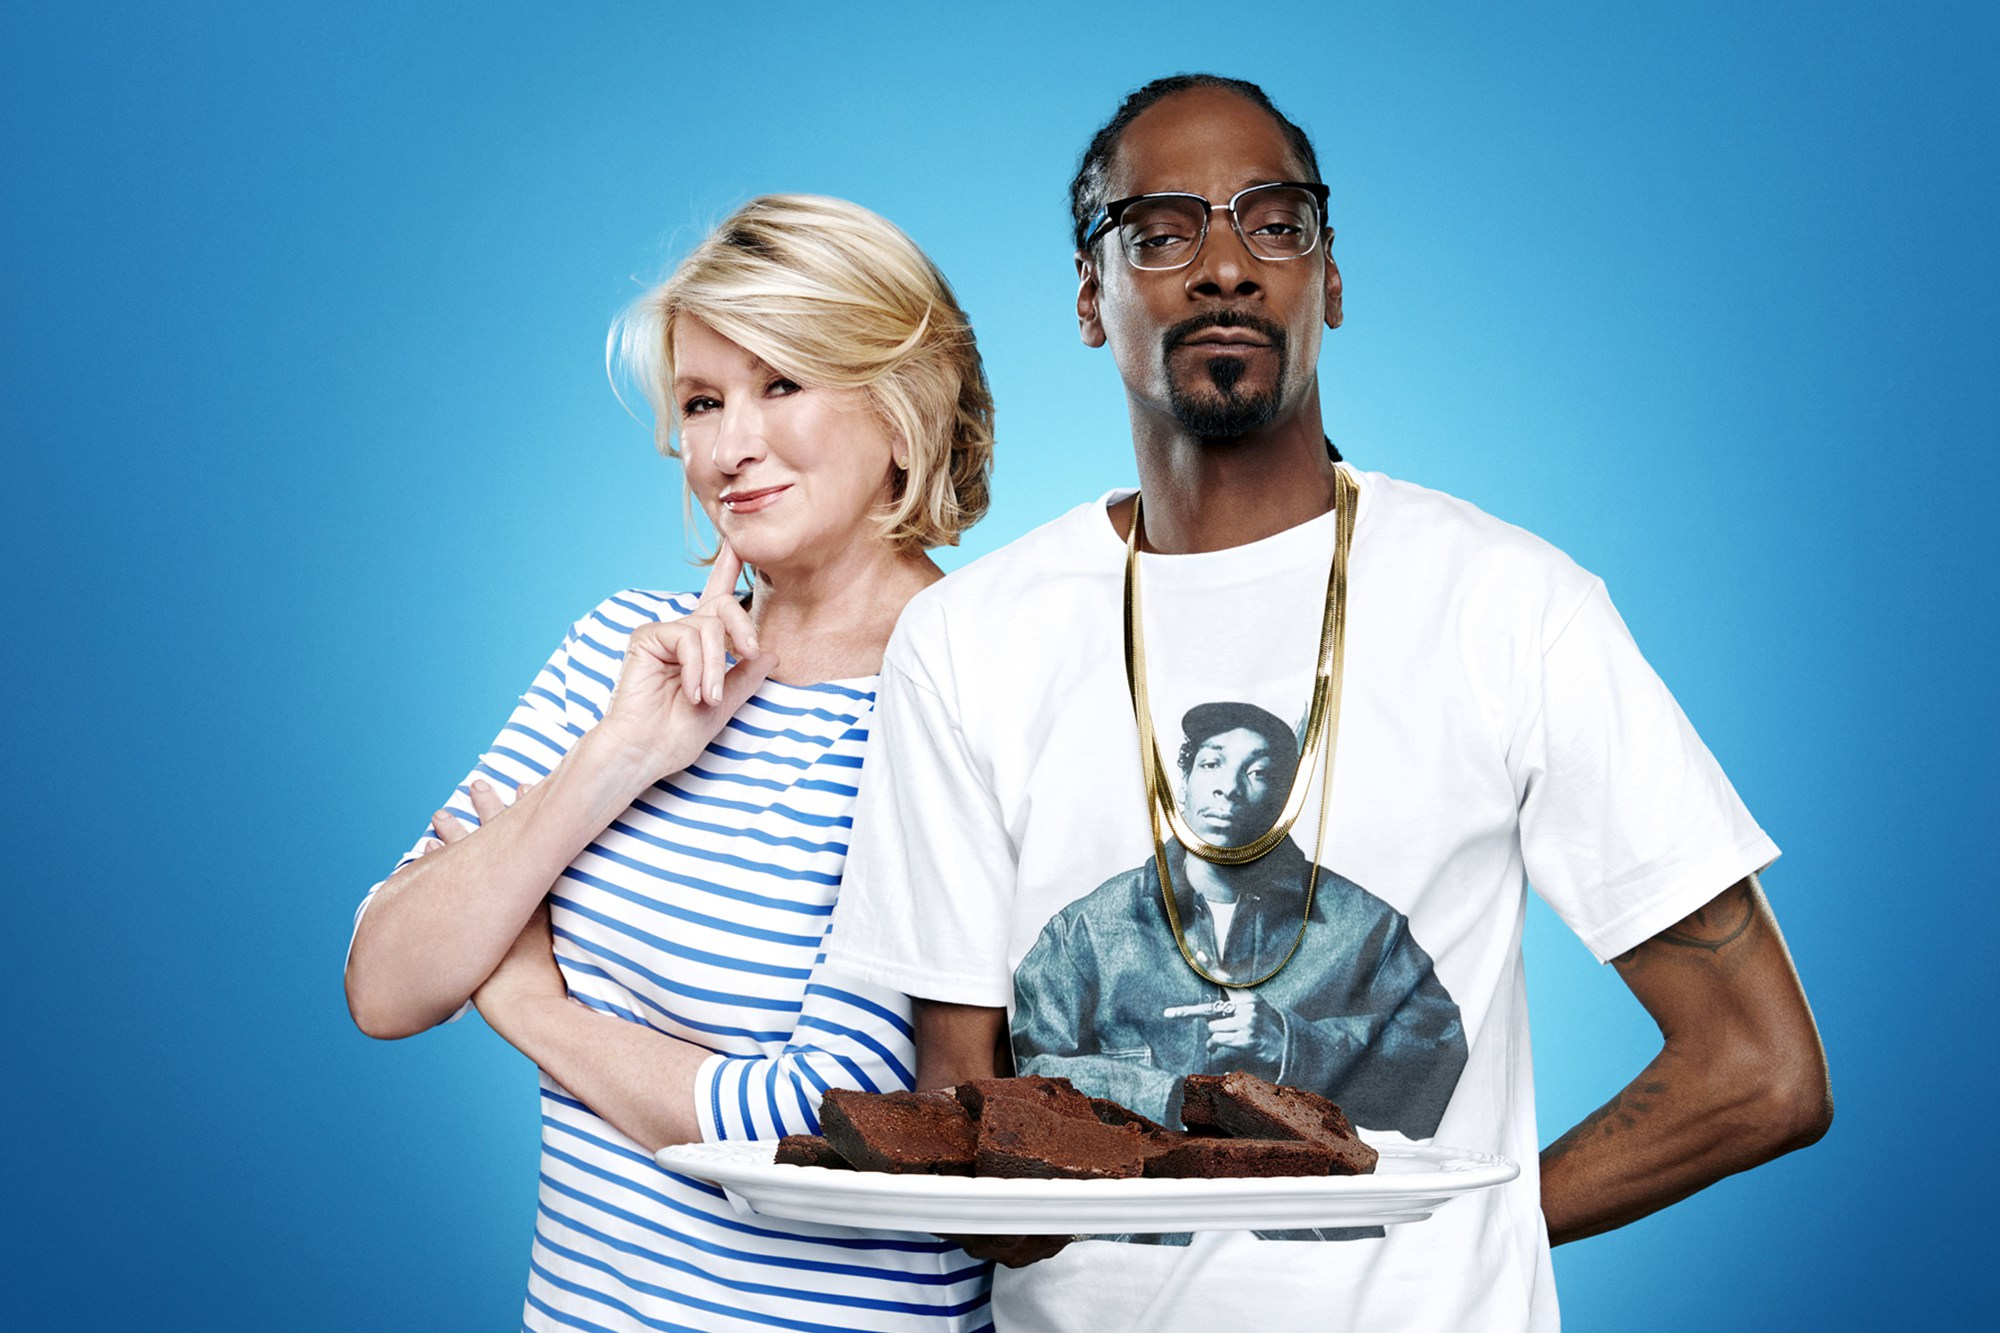 Martha Stewart and Snoop Dogg Have Us Hungry for More Unexpectedly Perfect Food + Music TV Duos